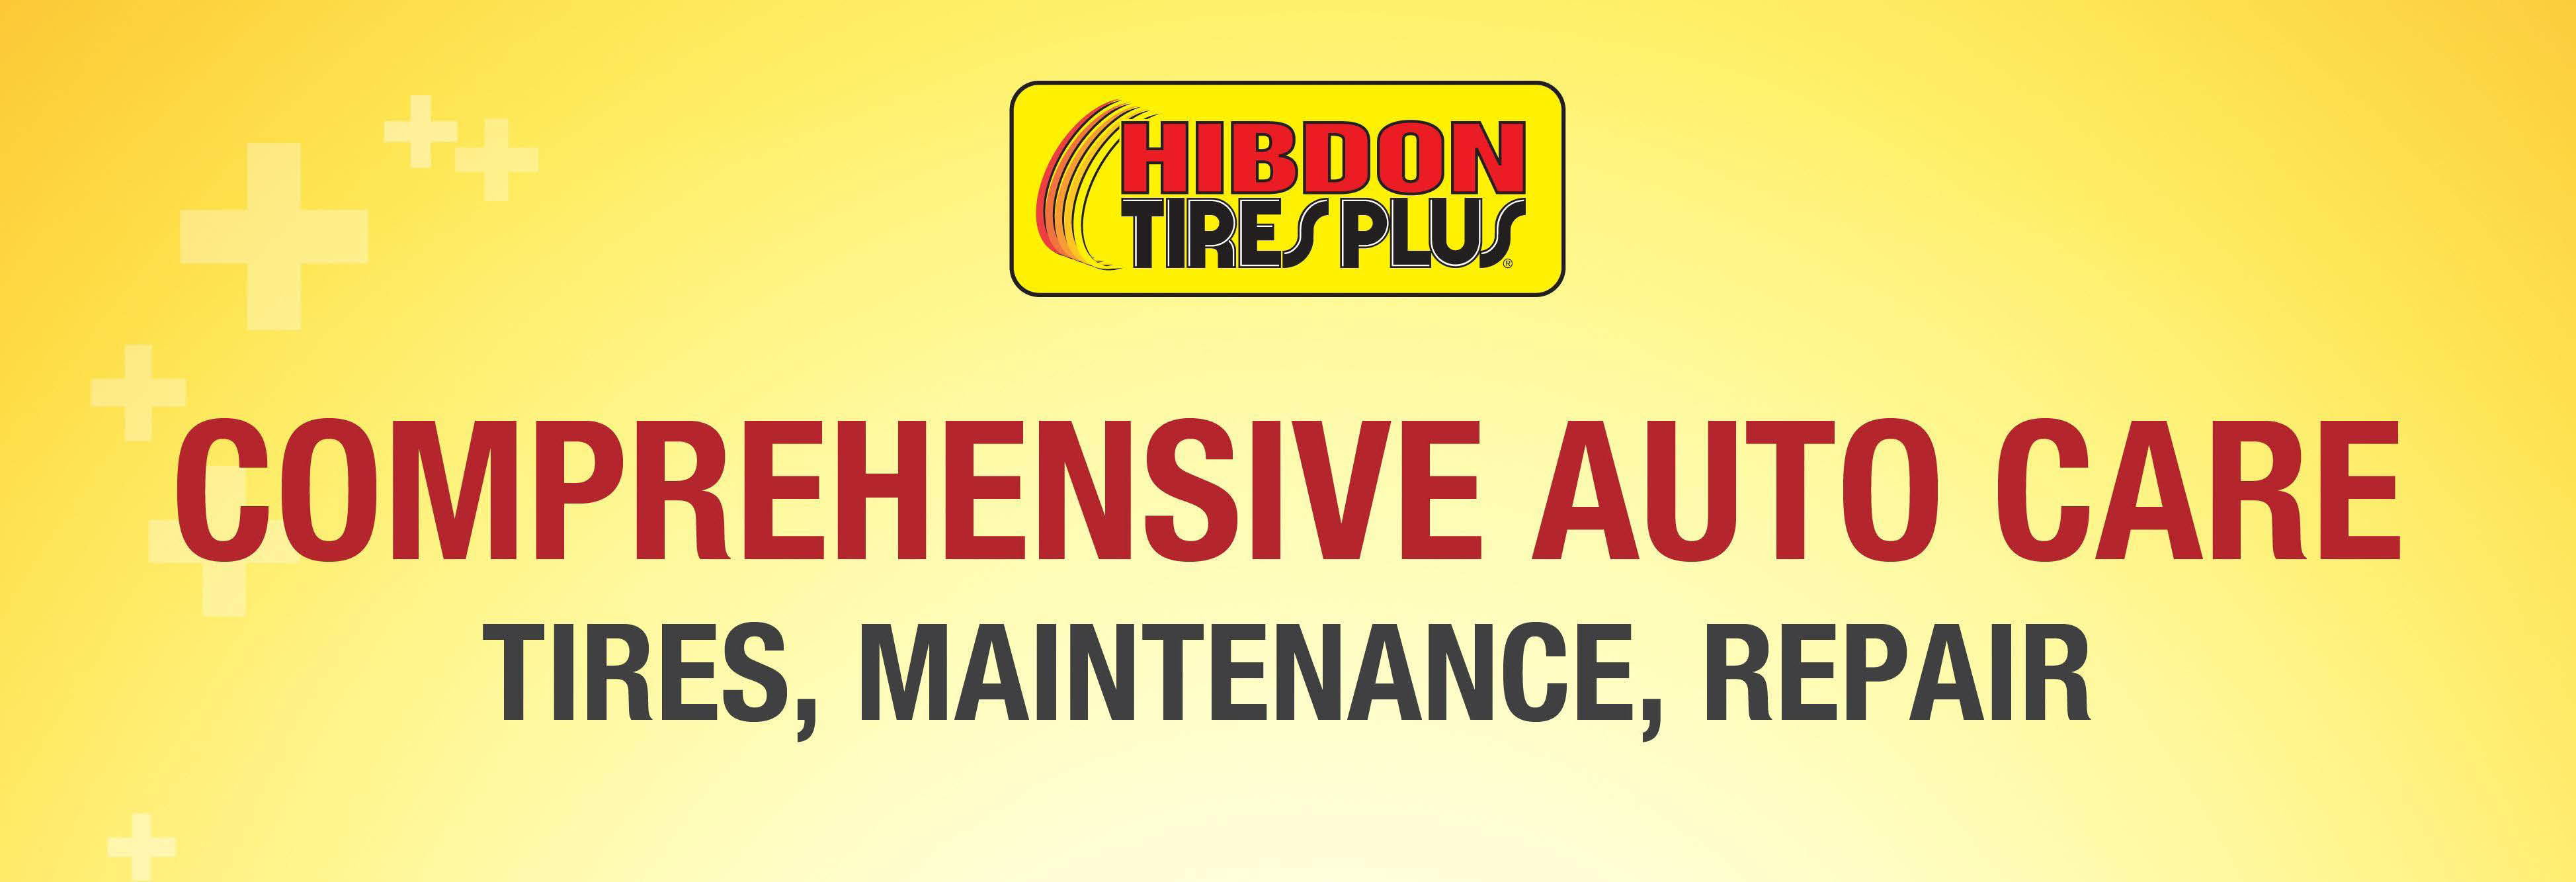 Hibdon Tires Coupon Oil Change picture gallery